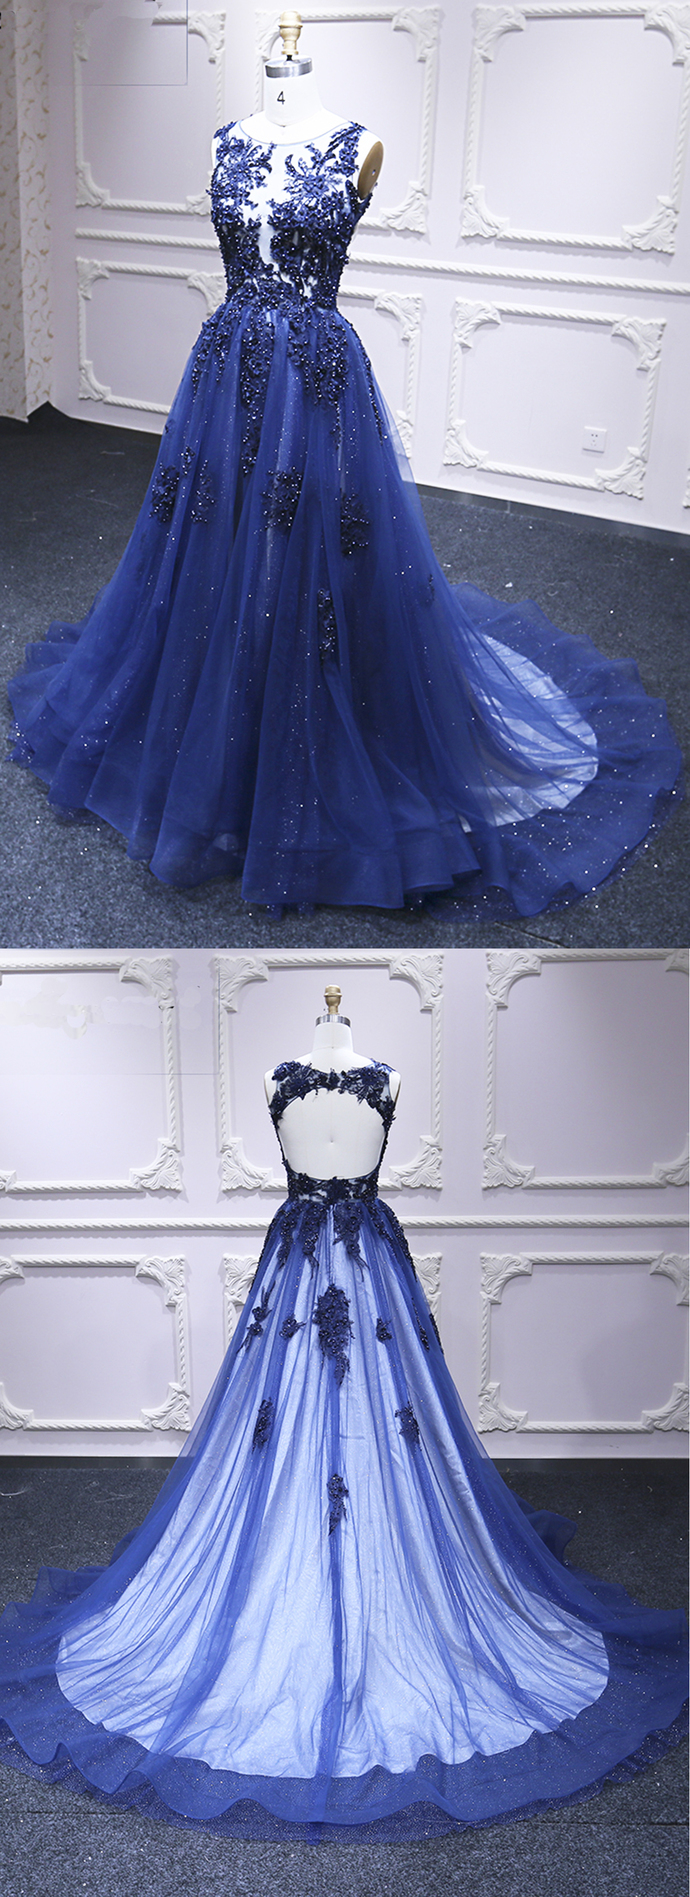 Deep Blue Tulle Open Back Long A Line Pageant Prom Dress, Lace Evening Dress